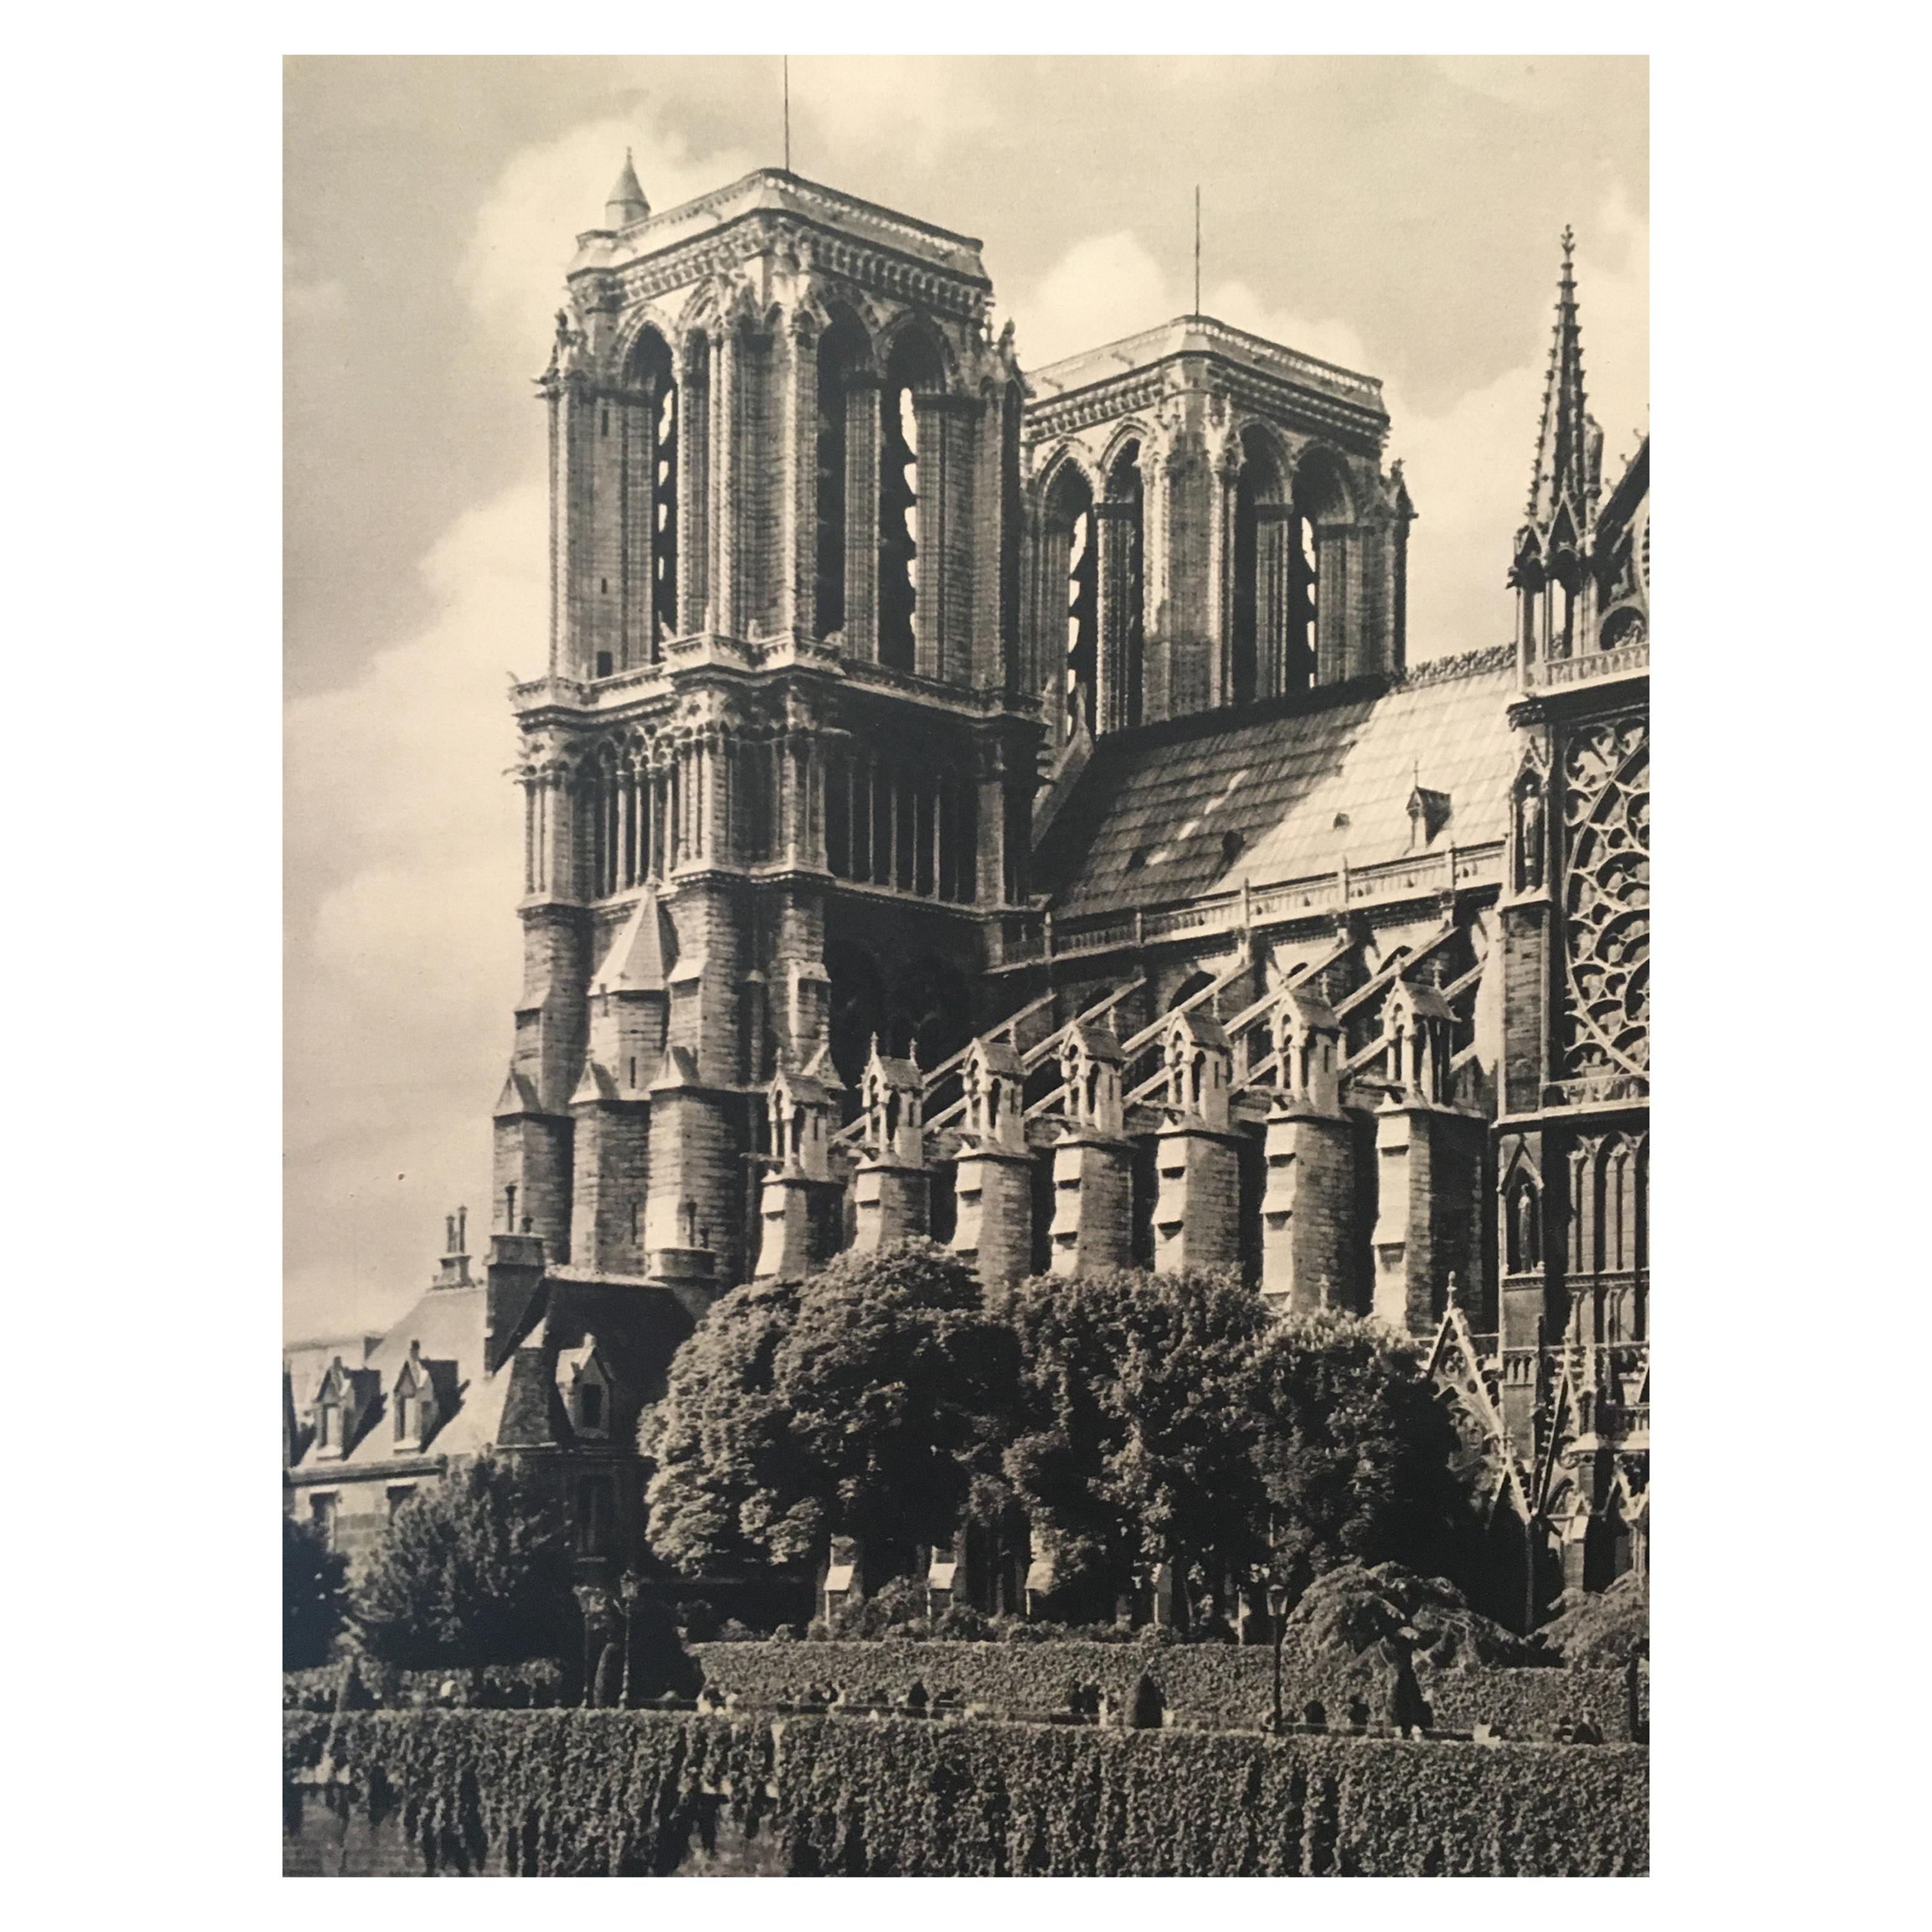 Original Vintage 1950s French Government Tourism Poster 'Notre-Dame'